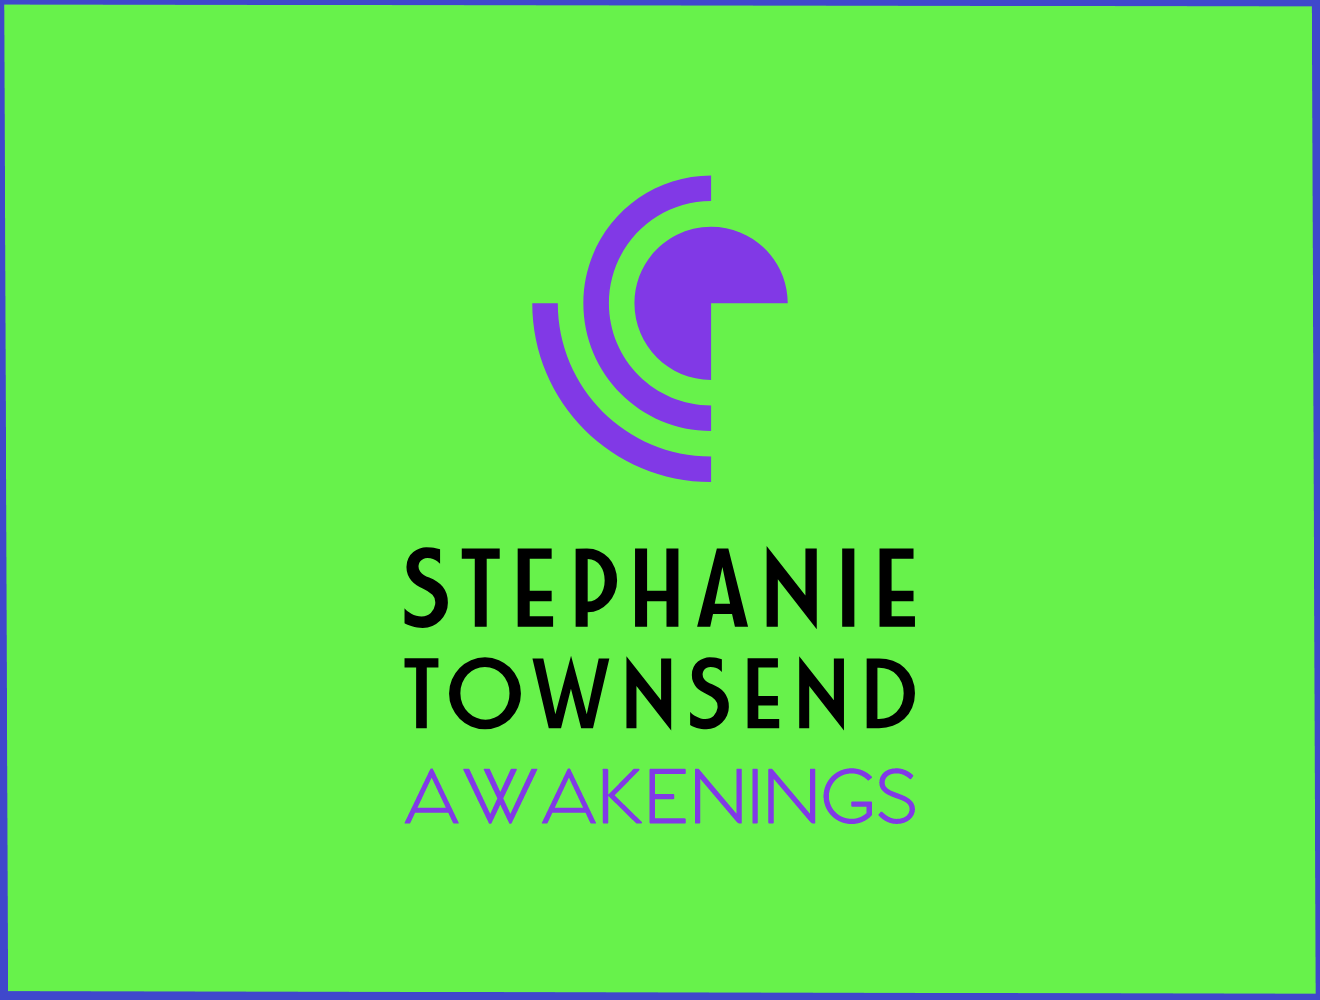 Stephanie Townsend Awakenings